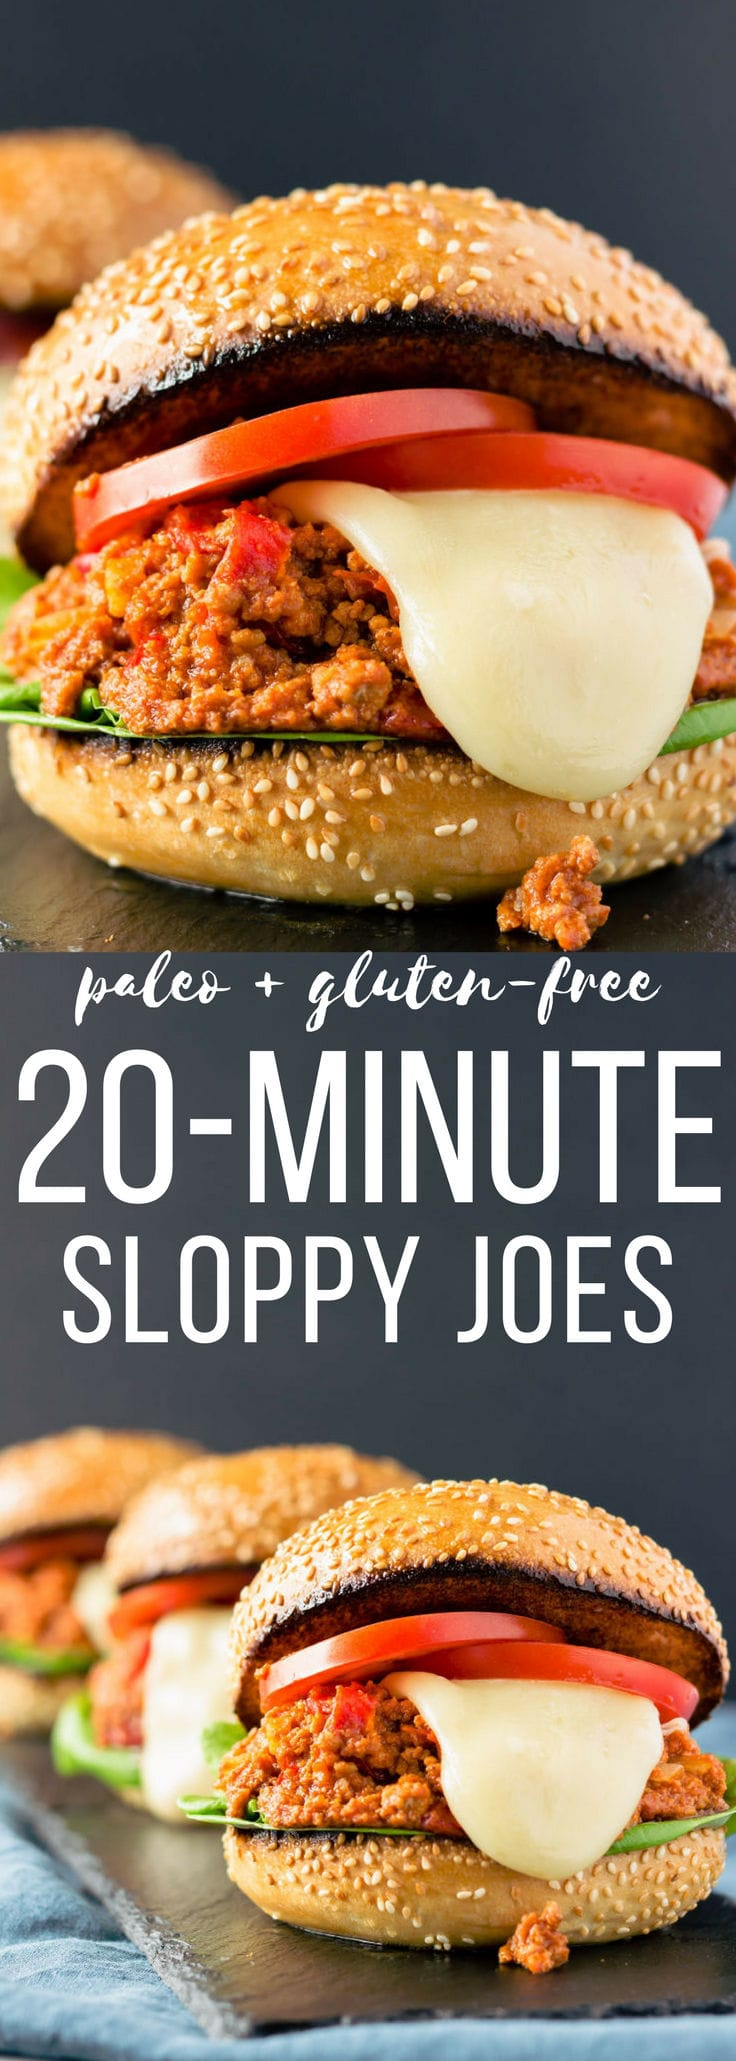 These quick and easy paleo sloppy joes can be made, from scratch, in just 20 minutes. This clean eating, kid-friendly recipe is the perfect weeknight meal and is guaranteed to please the whole family. Gluten-free and dairy-free options also available. | www.onecleverchef.com #paleo #gluten-free #weeknightmeal #20-minute #comfortfood #healthy #cleaneating